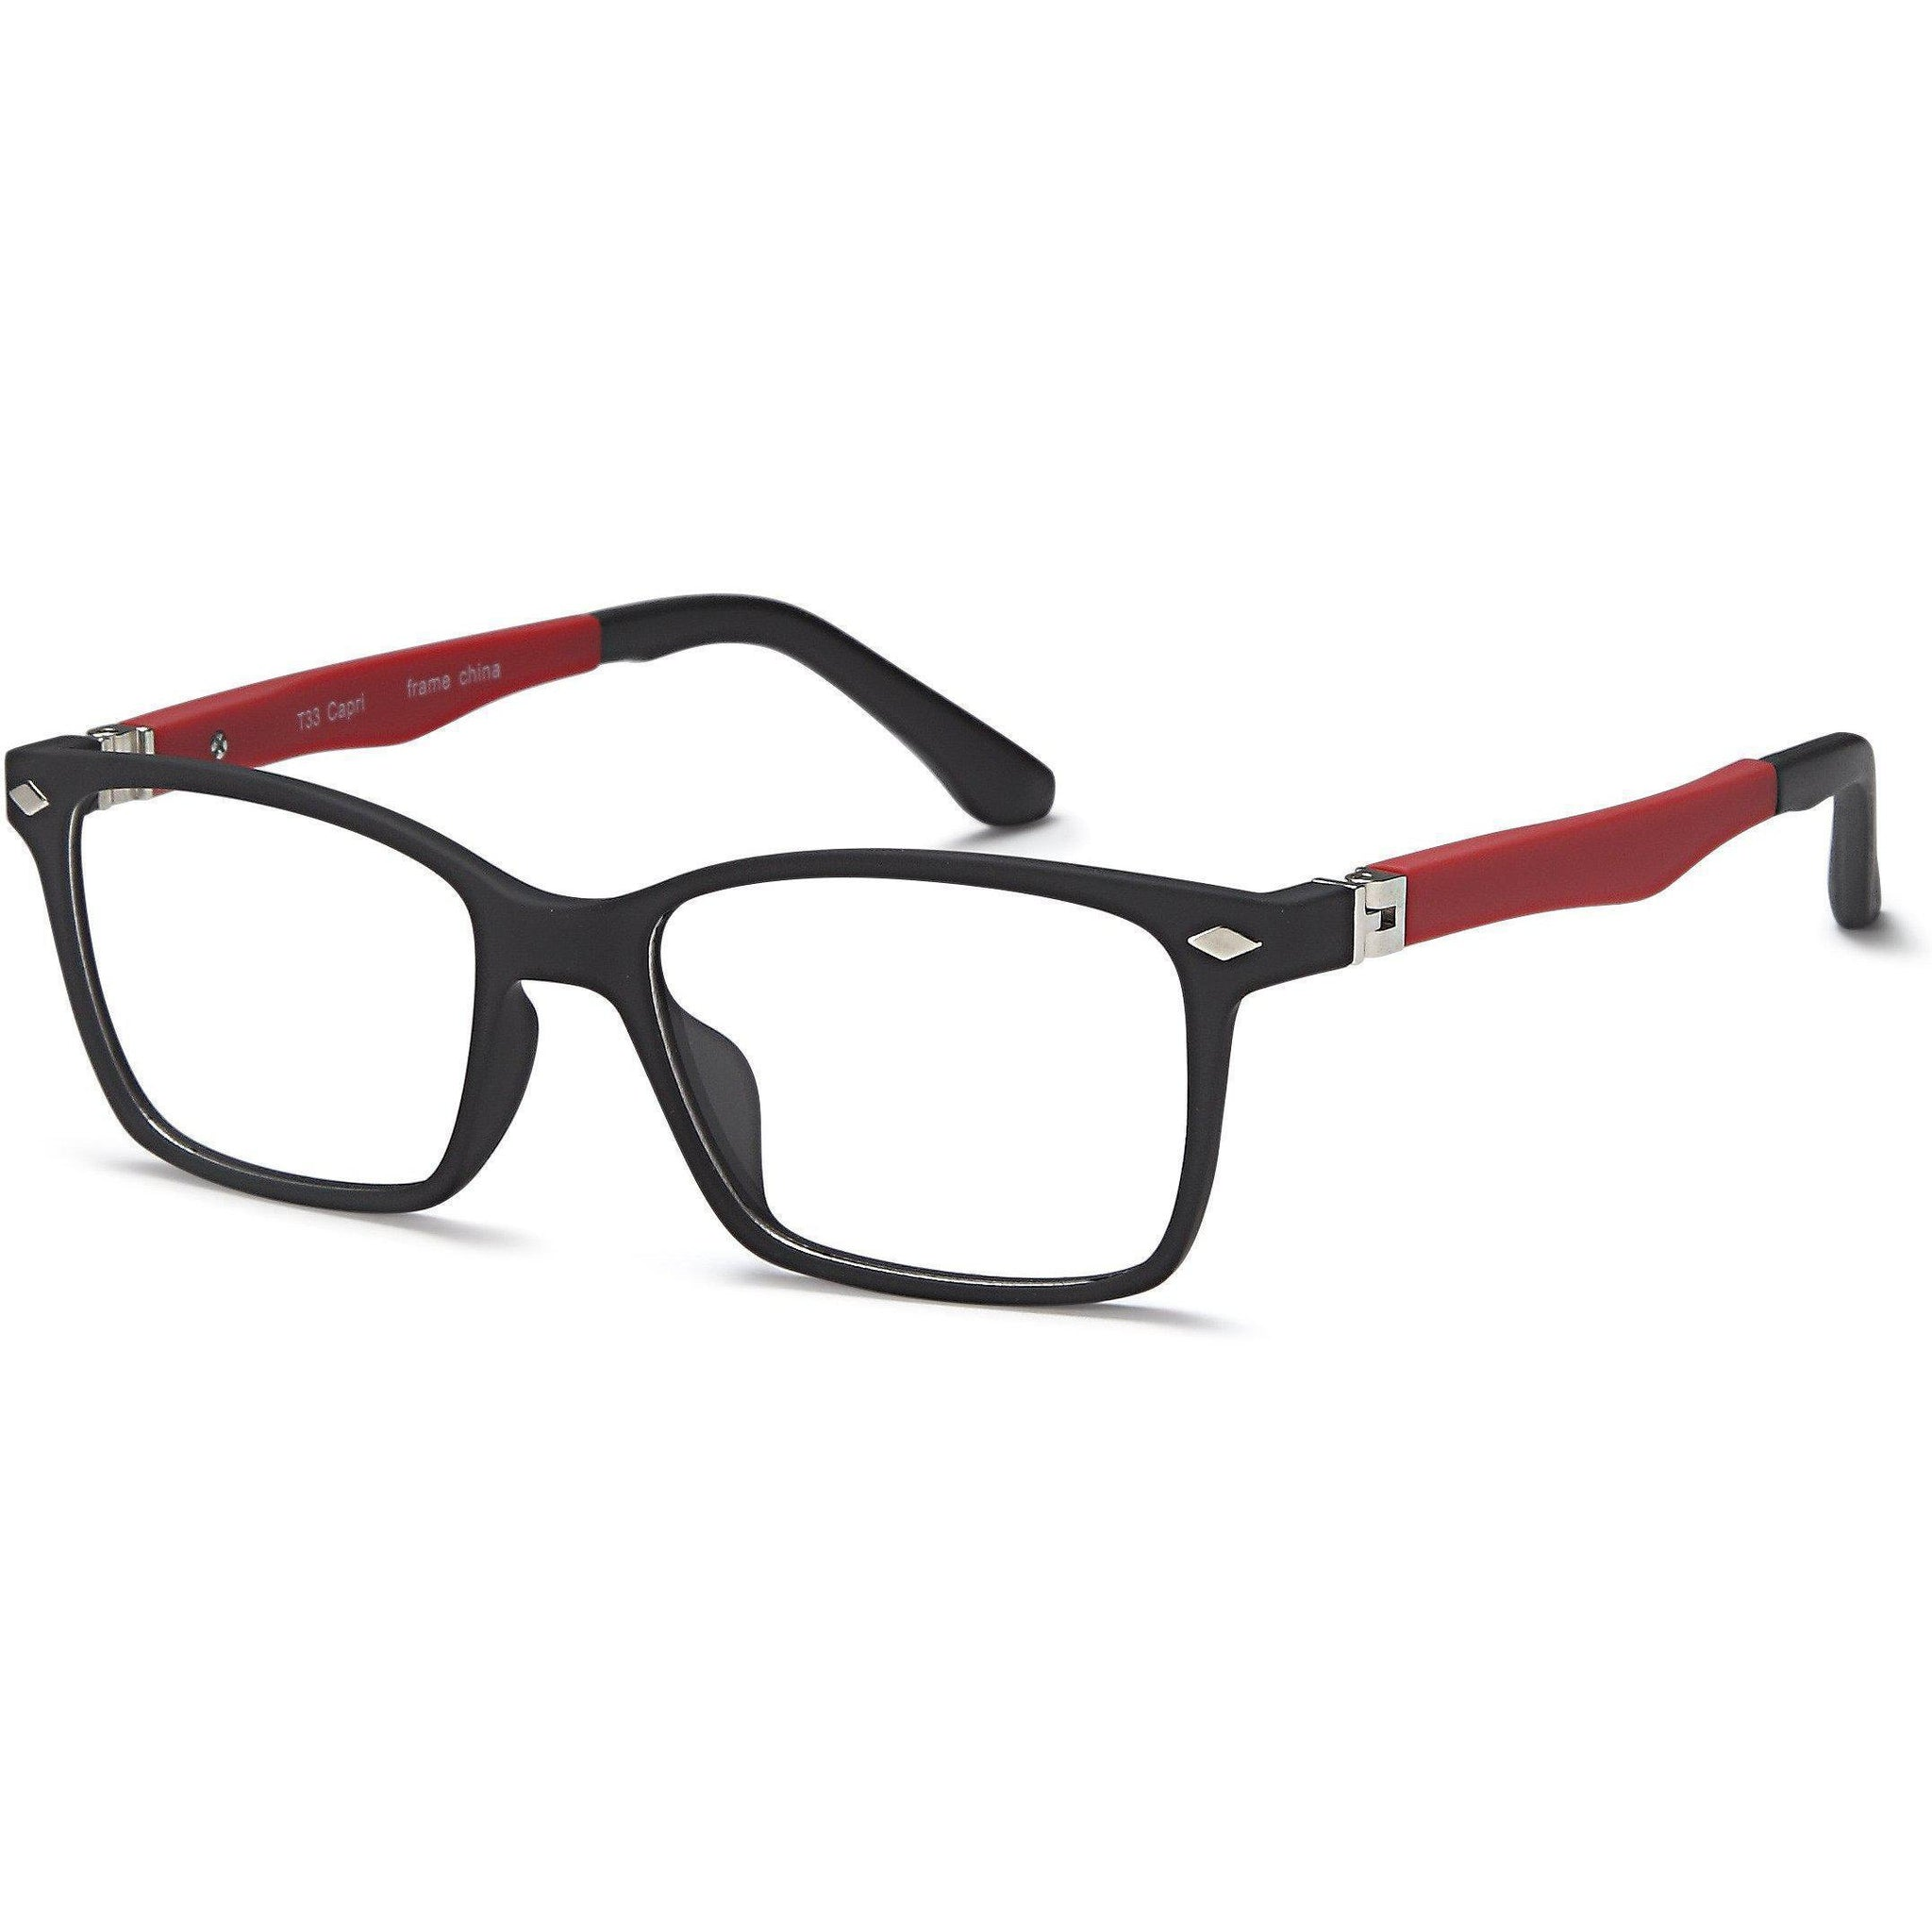 OnTrend Prescription Glasses Madison Eyeglasses Frames